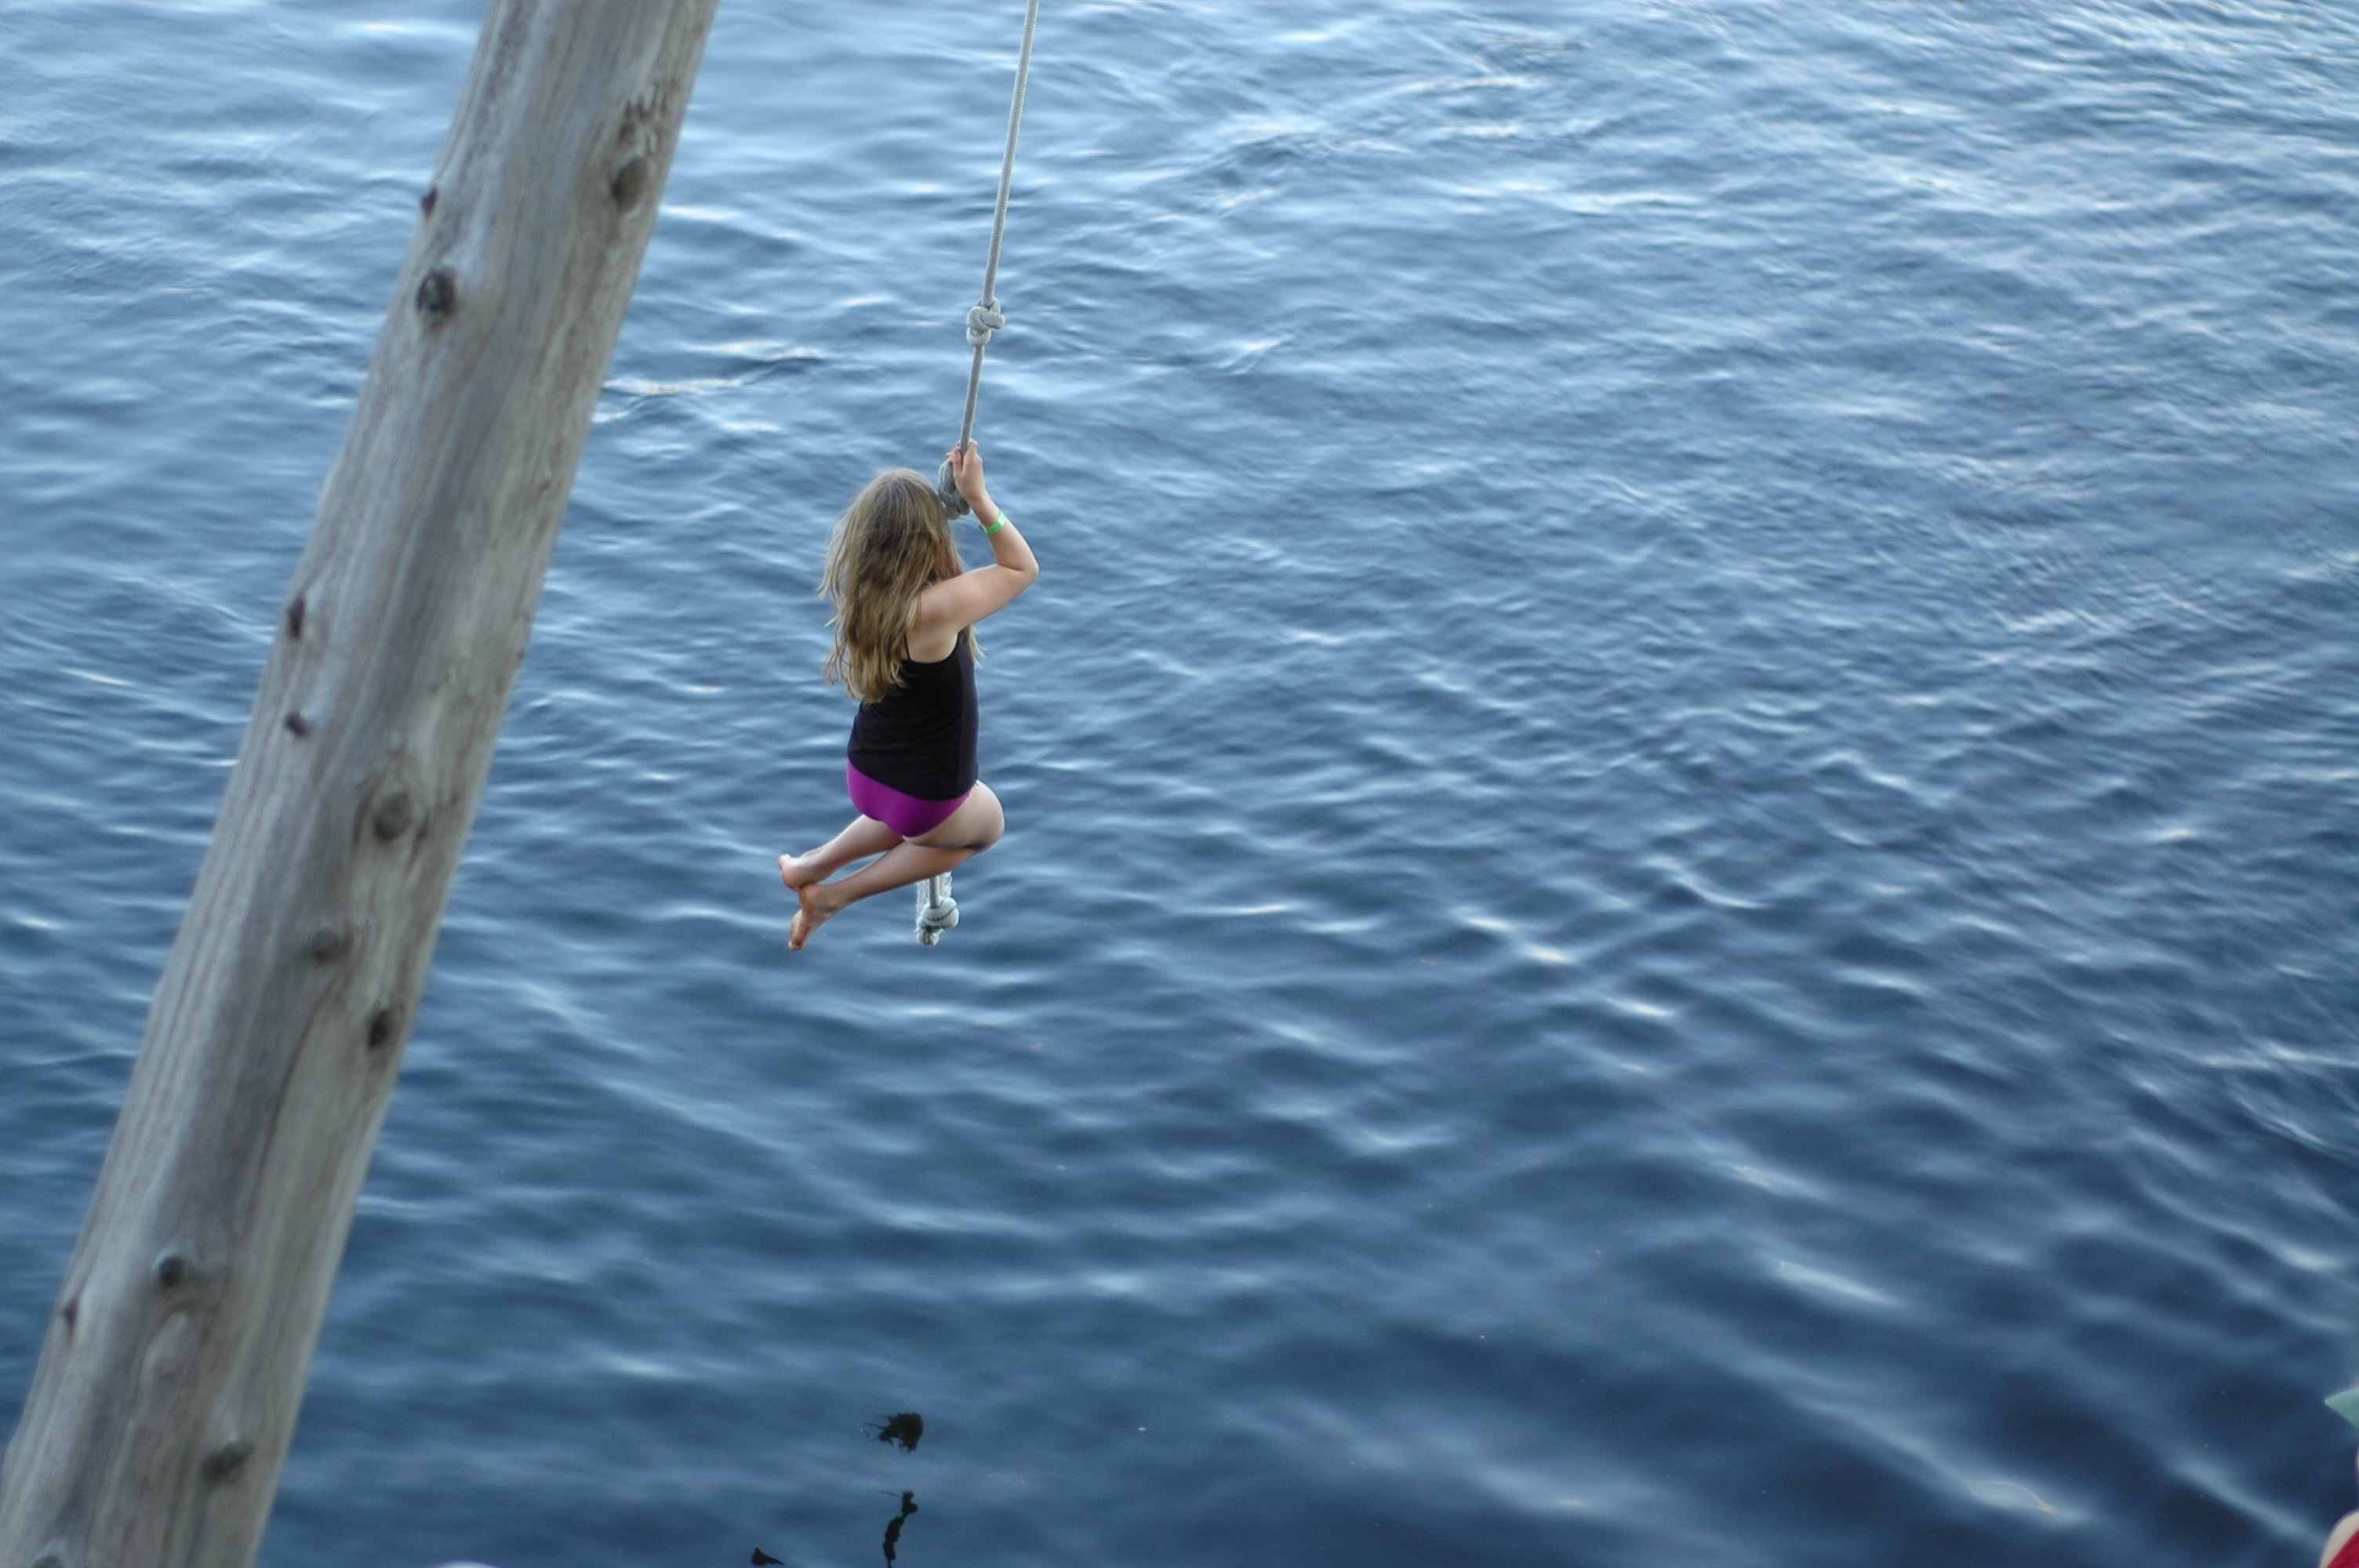 Camper rope-swinging into the water.